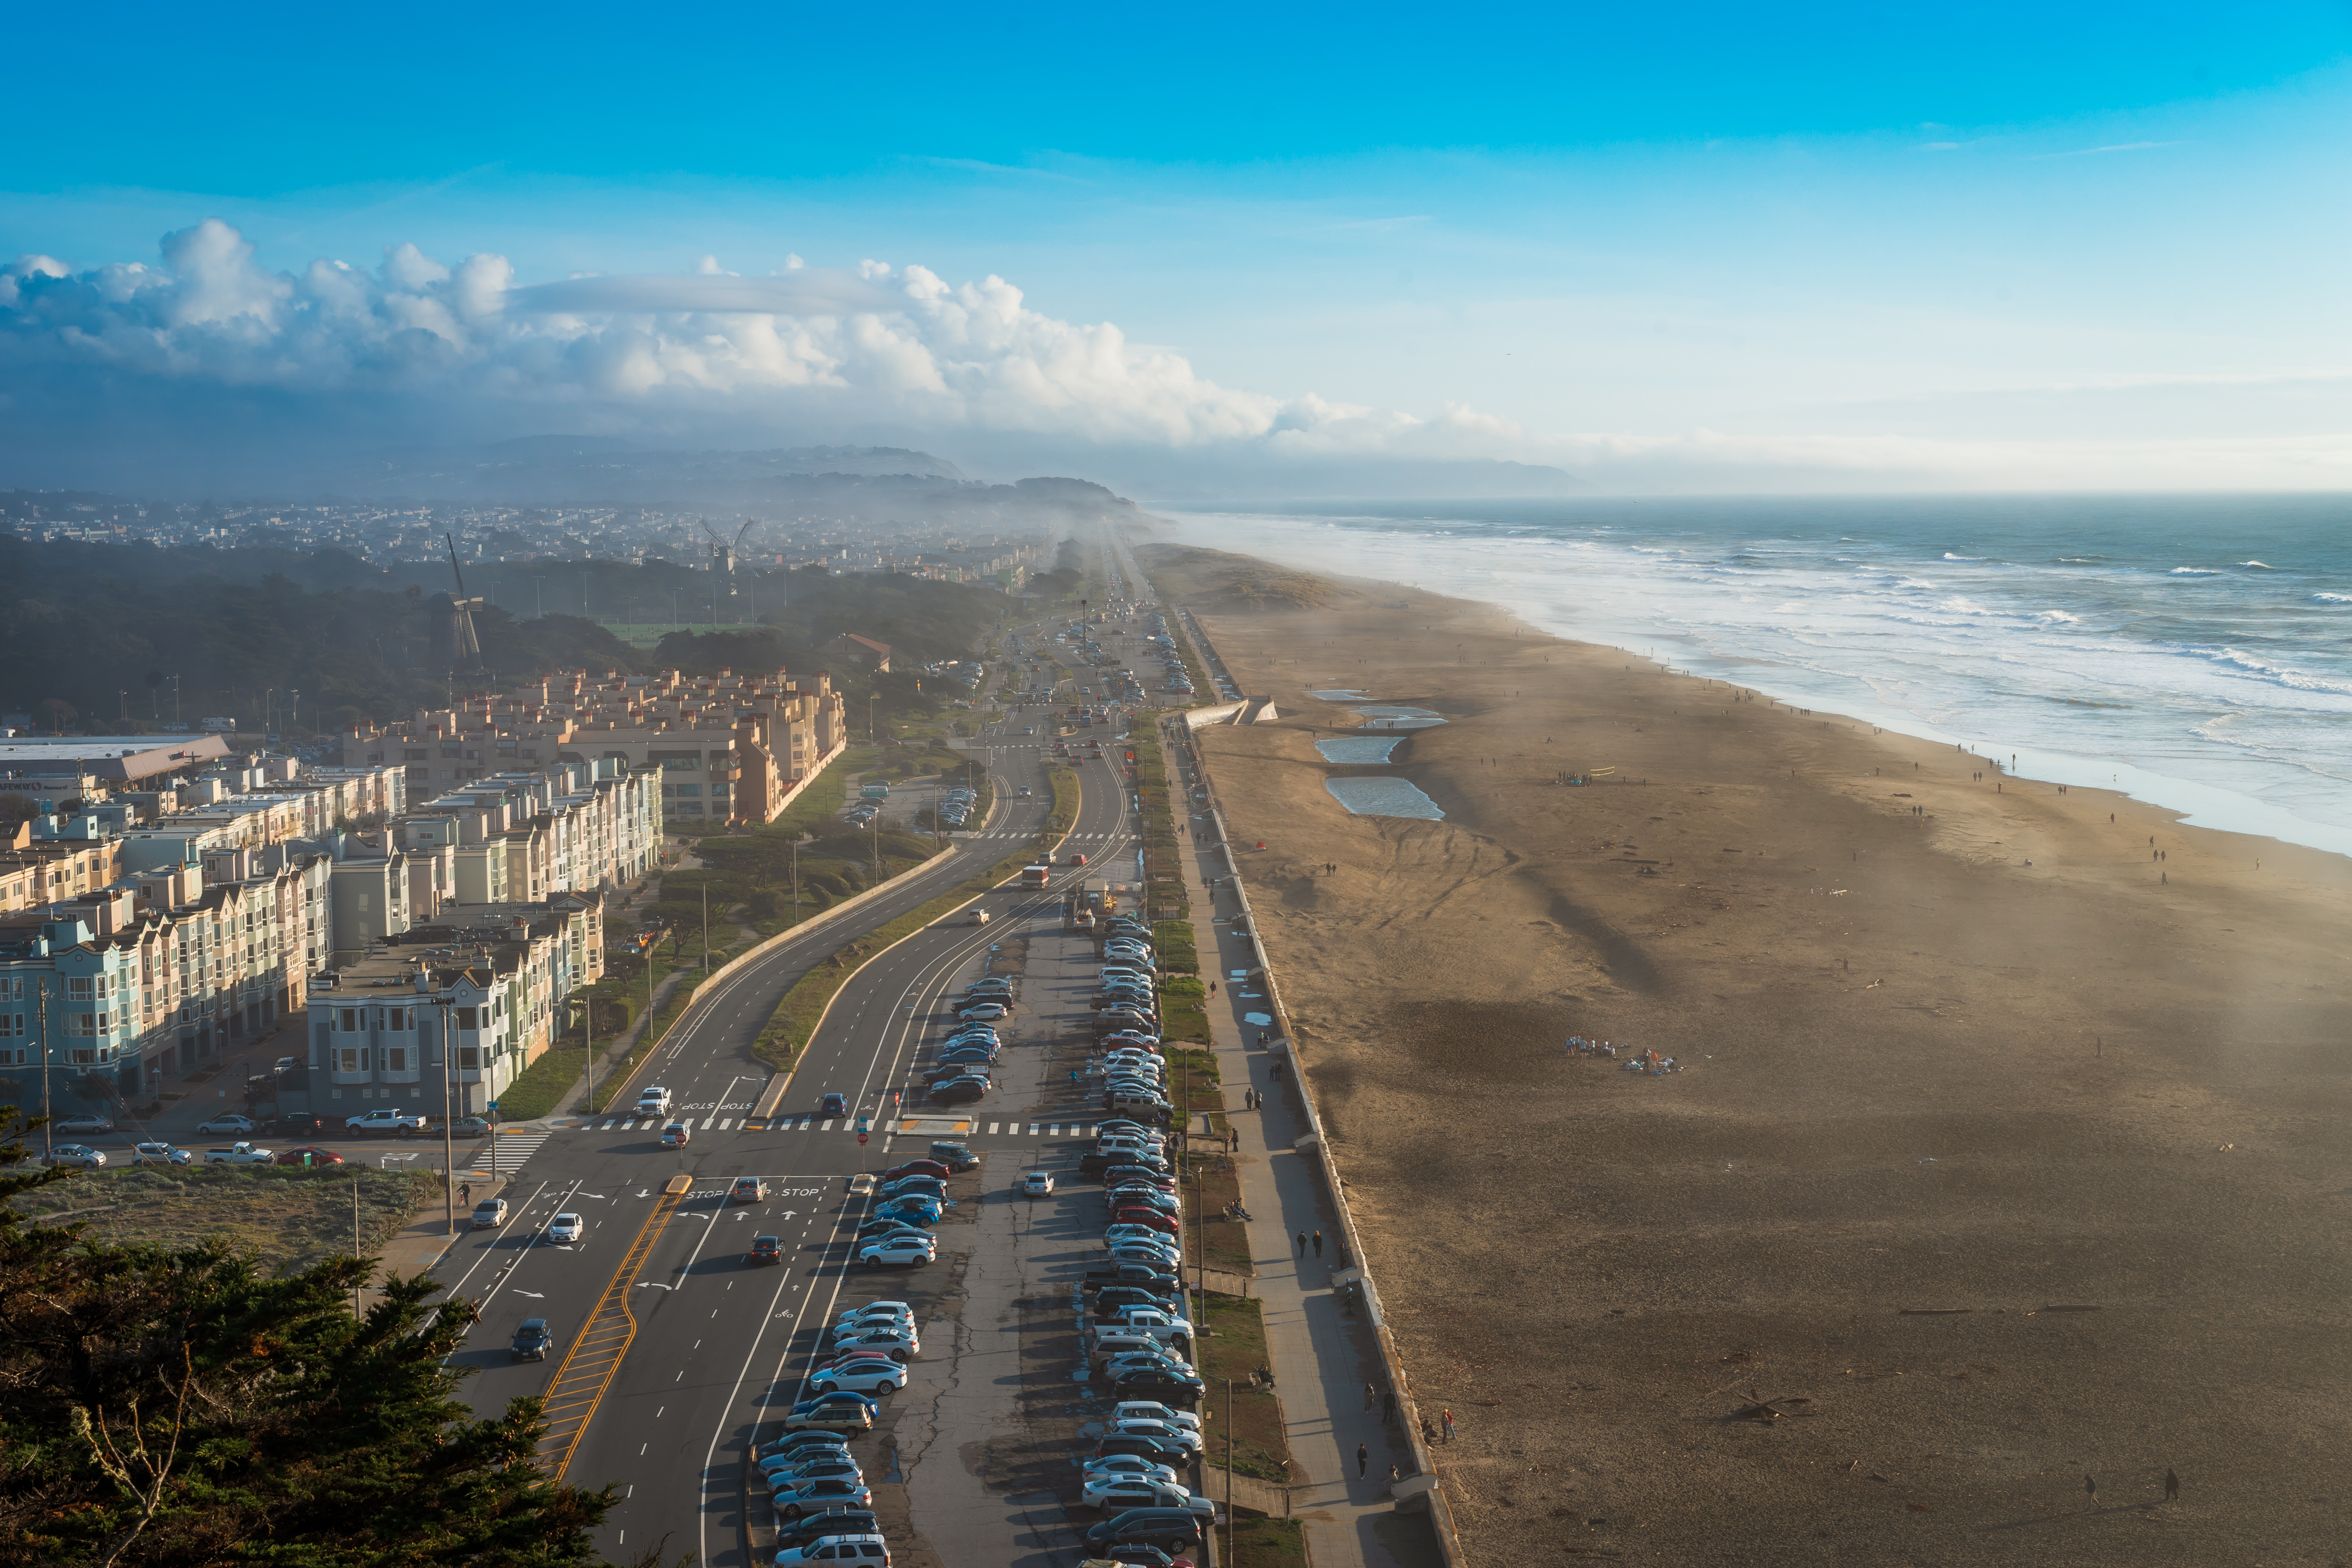 A long stretch of sandy beach with residential units on the left, the ocean on the right. Fog and clouds can also be seen in the distance.